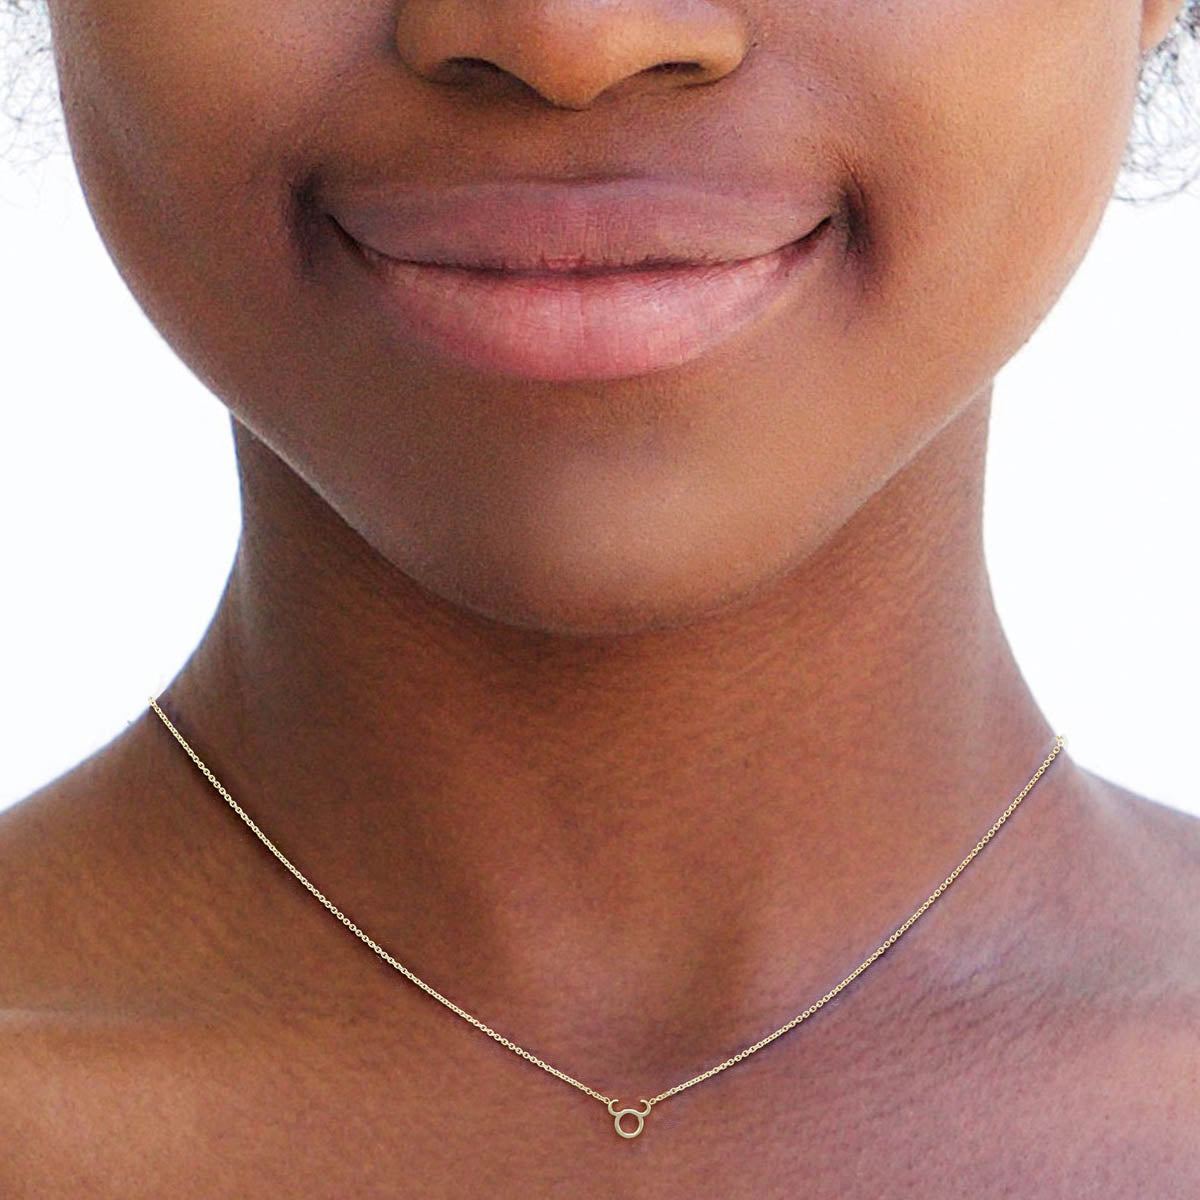 Image of Taurus Gold Zodiac Necklace on Woman's Neck